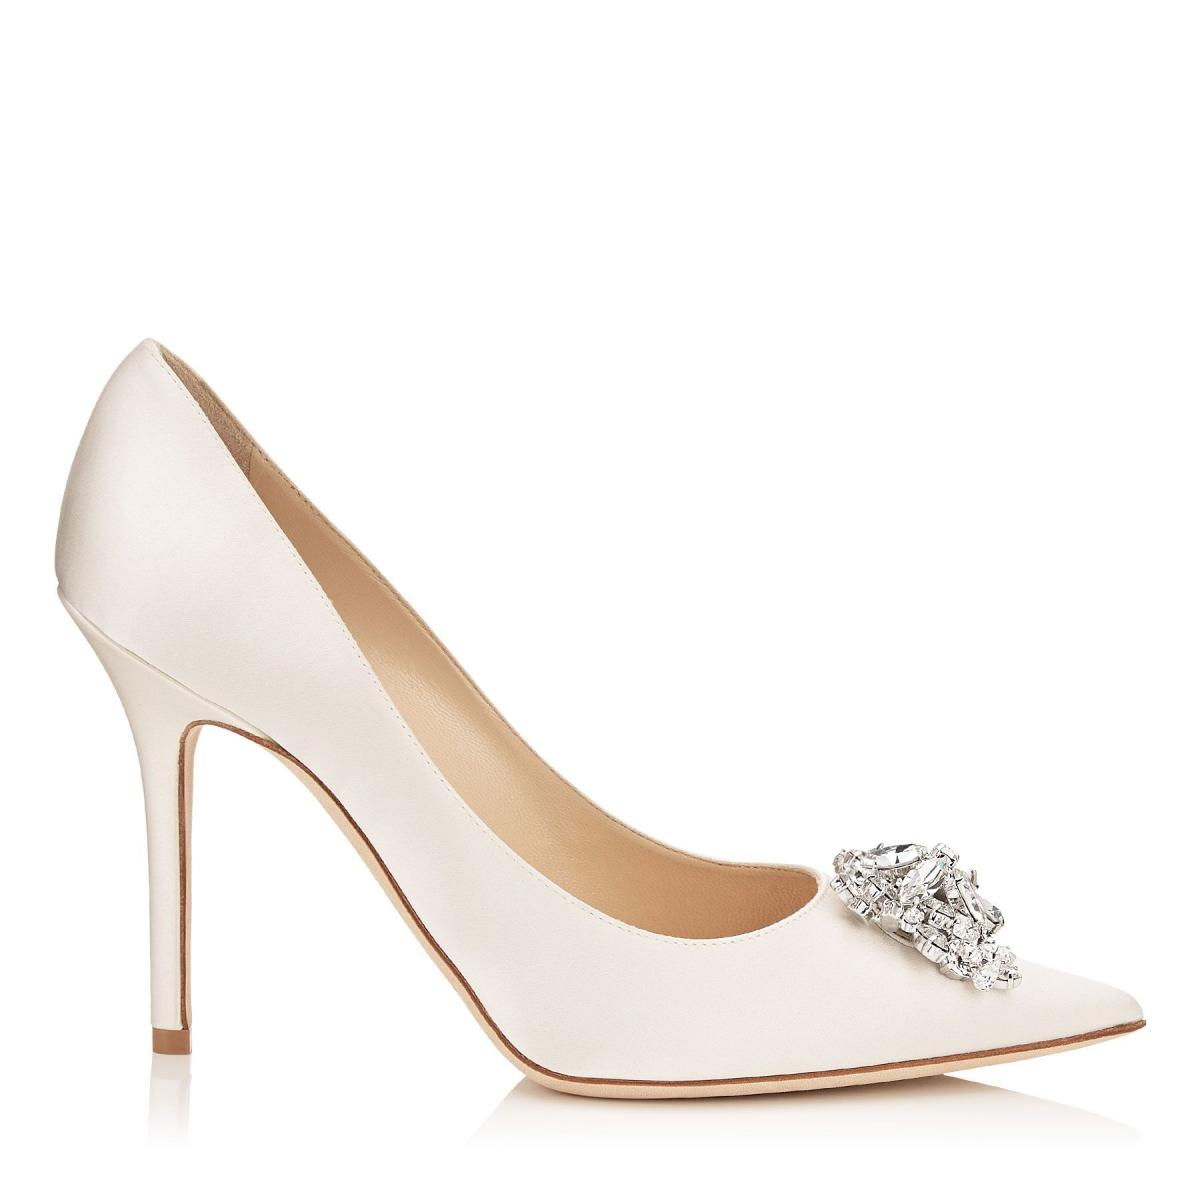 Stunningly beautiful designer bridal shoes, designed in London by Emmy Scarterfield. Hand lasted in our dedicated workshop our wedding shoes are made with love and incredible skill, using only the finest materials and stunning hand-beaded embellishments.